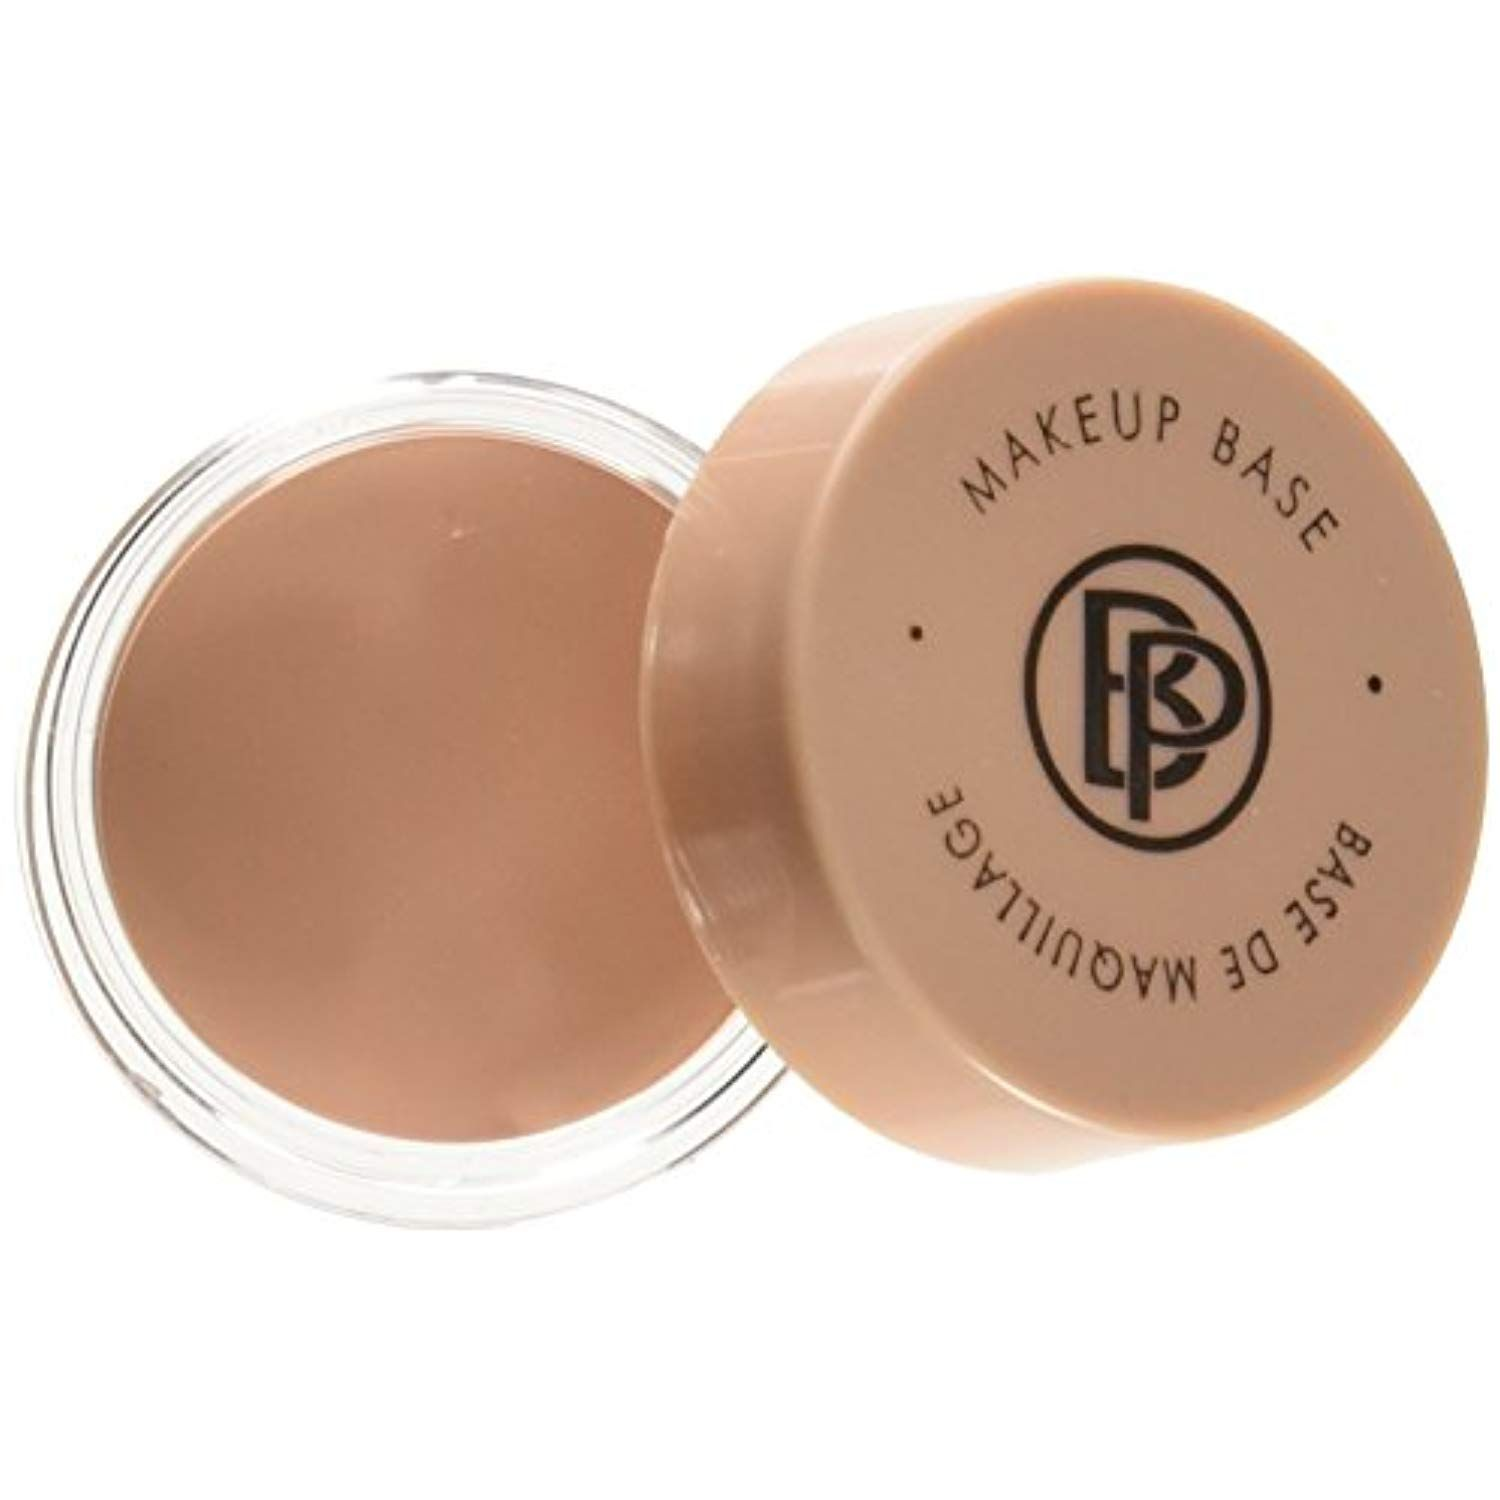 Bella Pierre Makeup Base, 0.3Ounce >>> Click image to